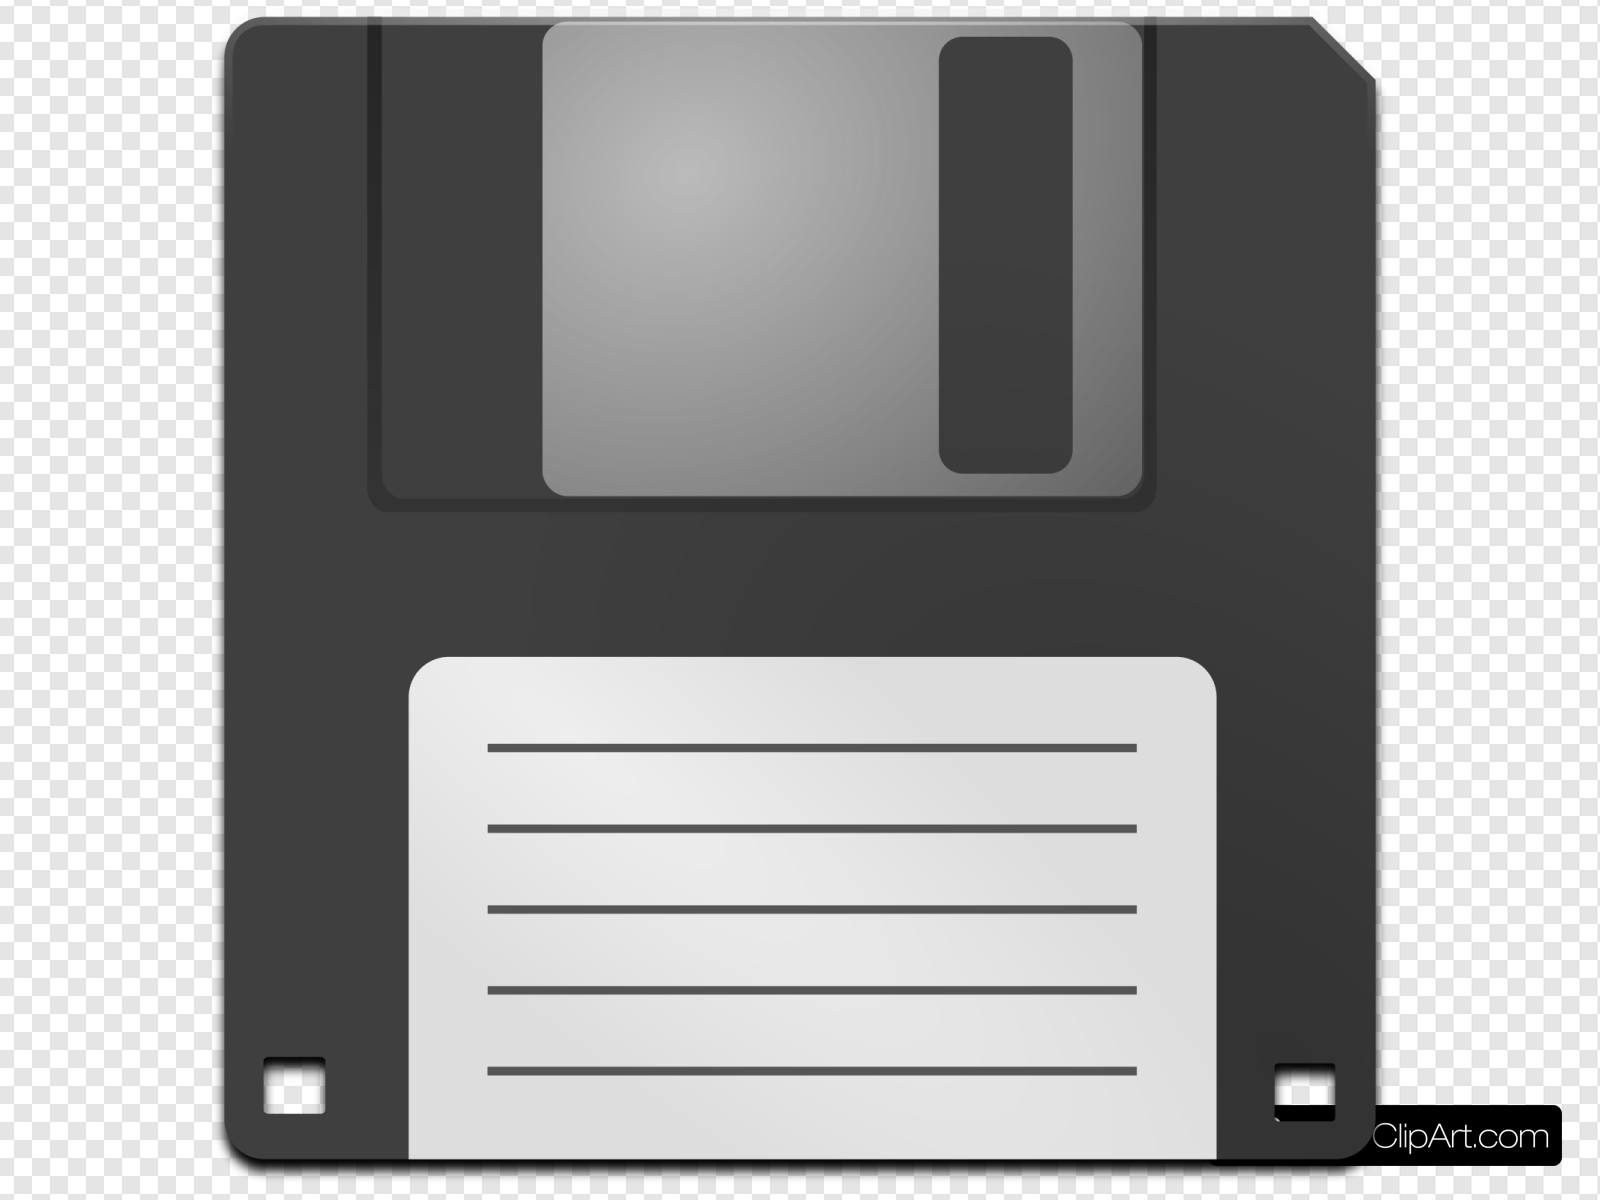 Media Floppy Disk Clip art, Icon and SVG.